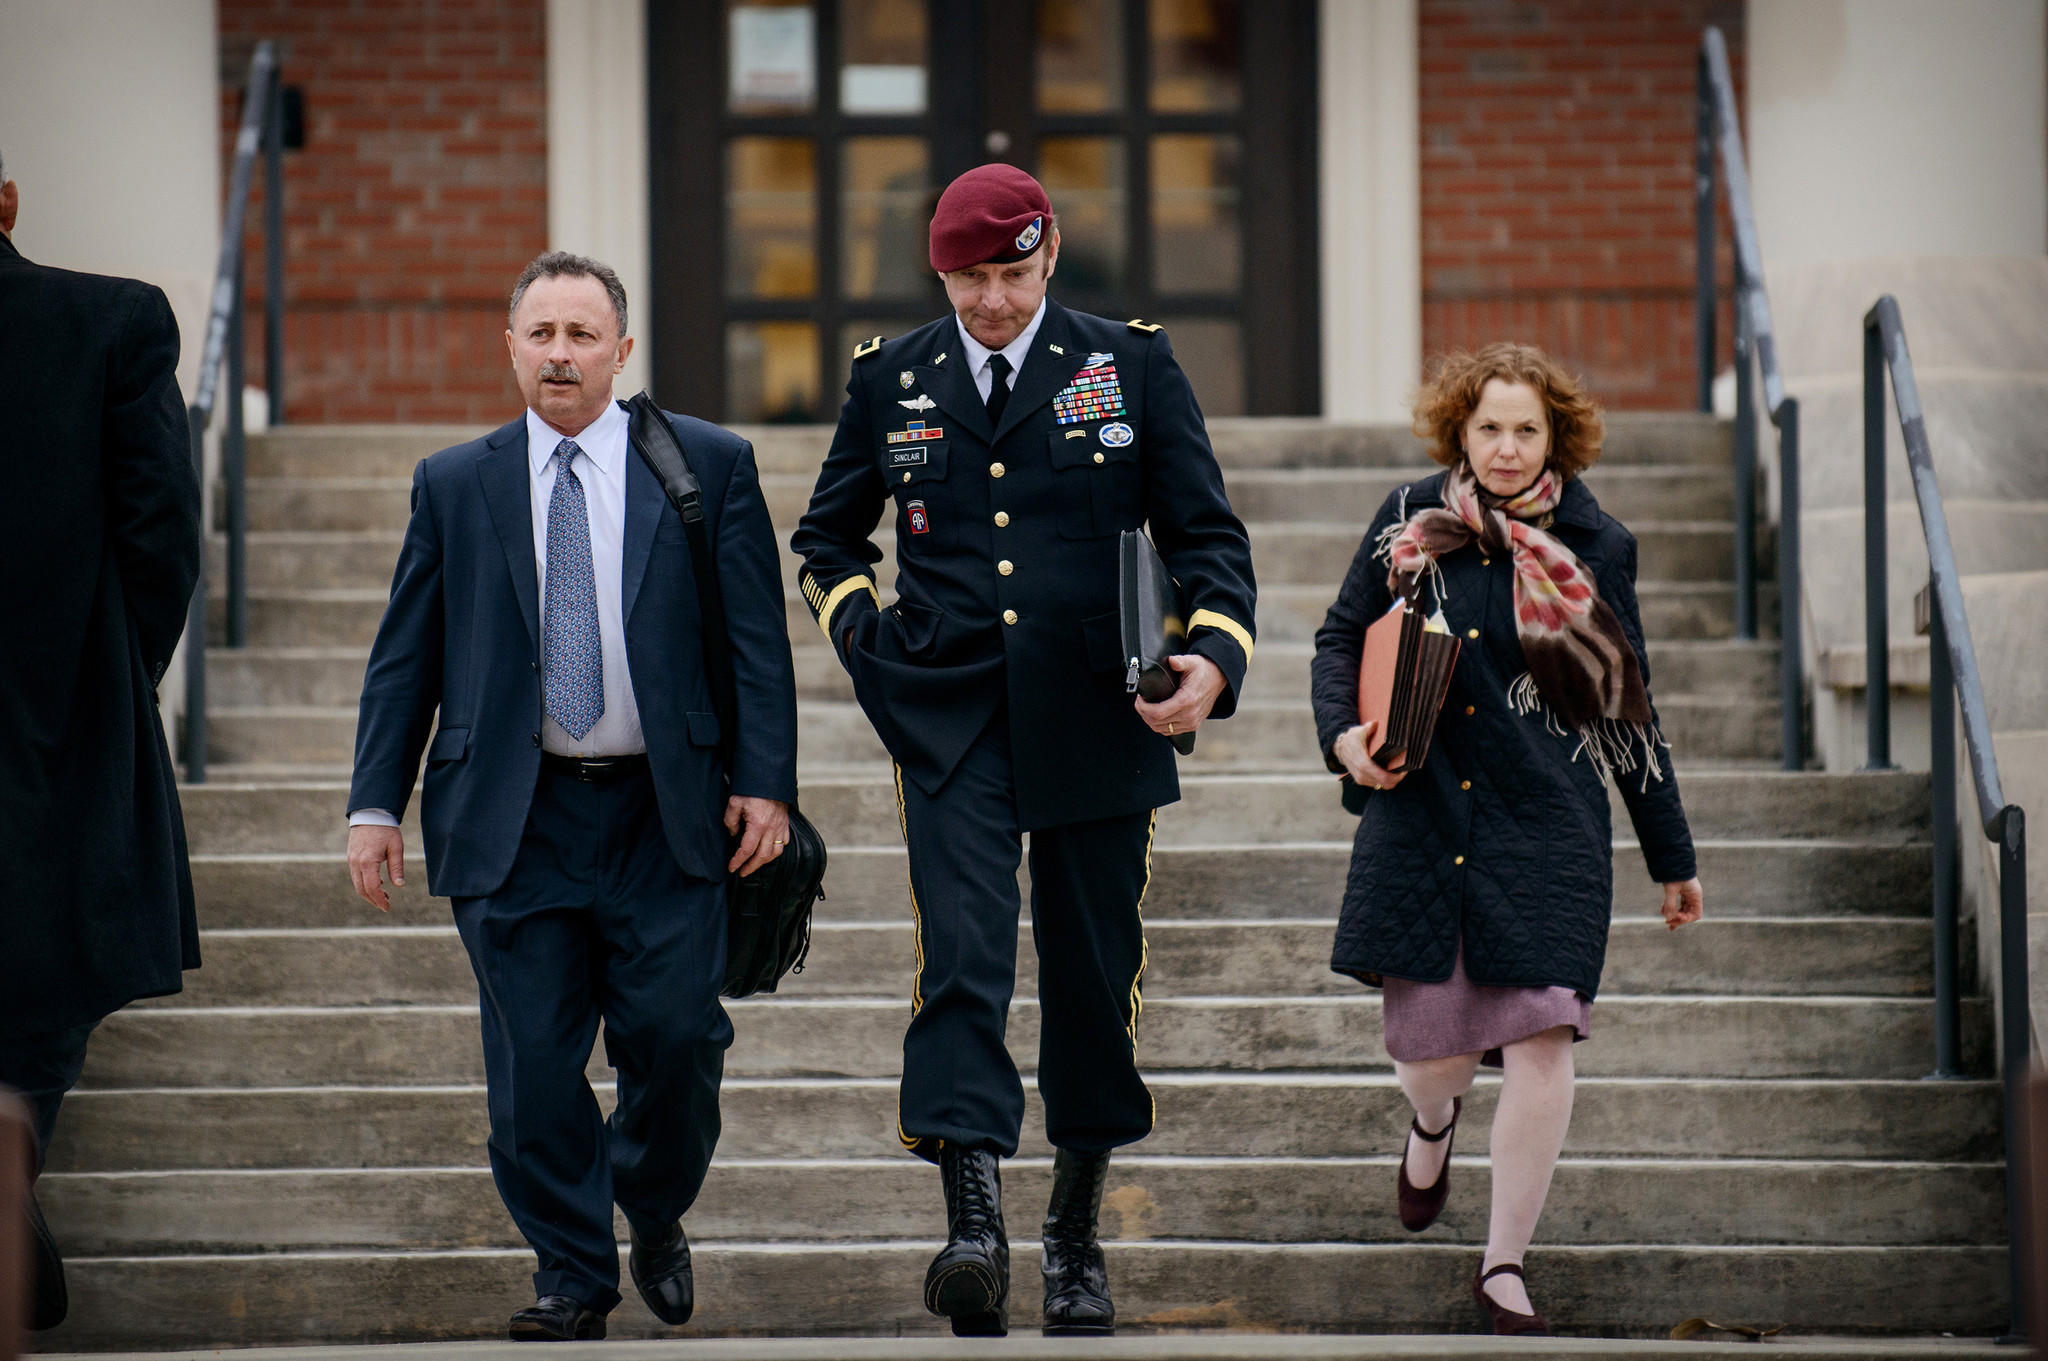 Brig. Gen. Jeffrey Sinclair leaves the courthouse on March 4 with his lawyers Richard Scheff, left, and Ellen C. Brotman.